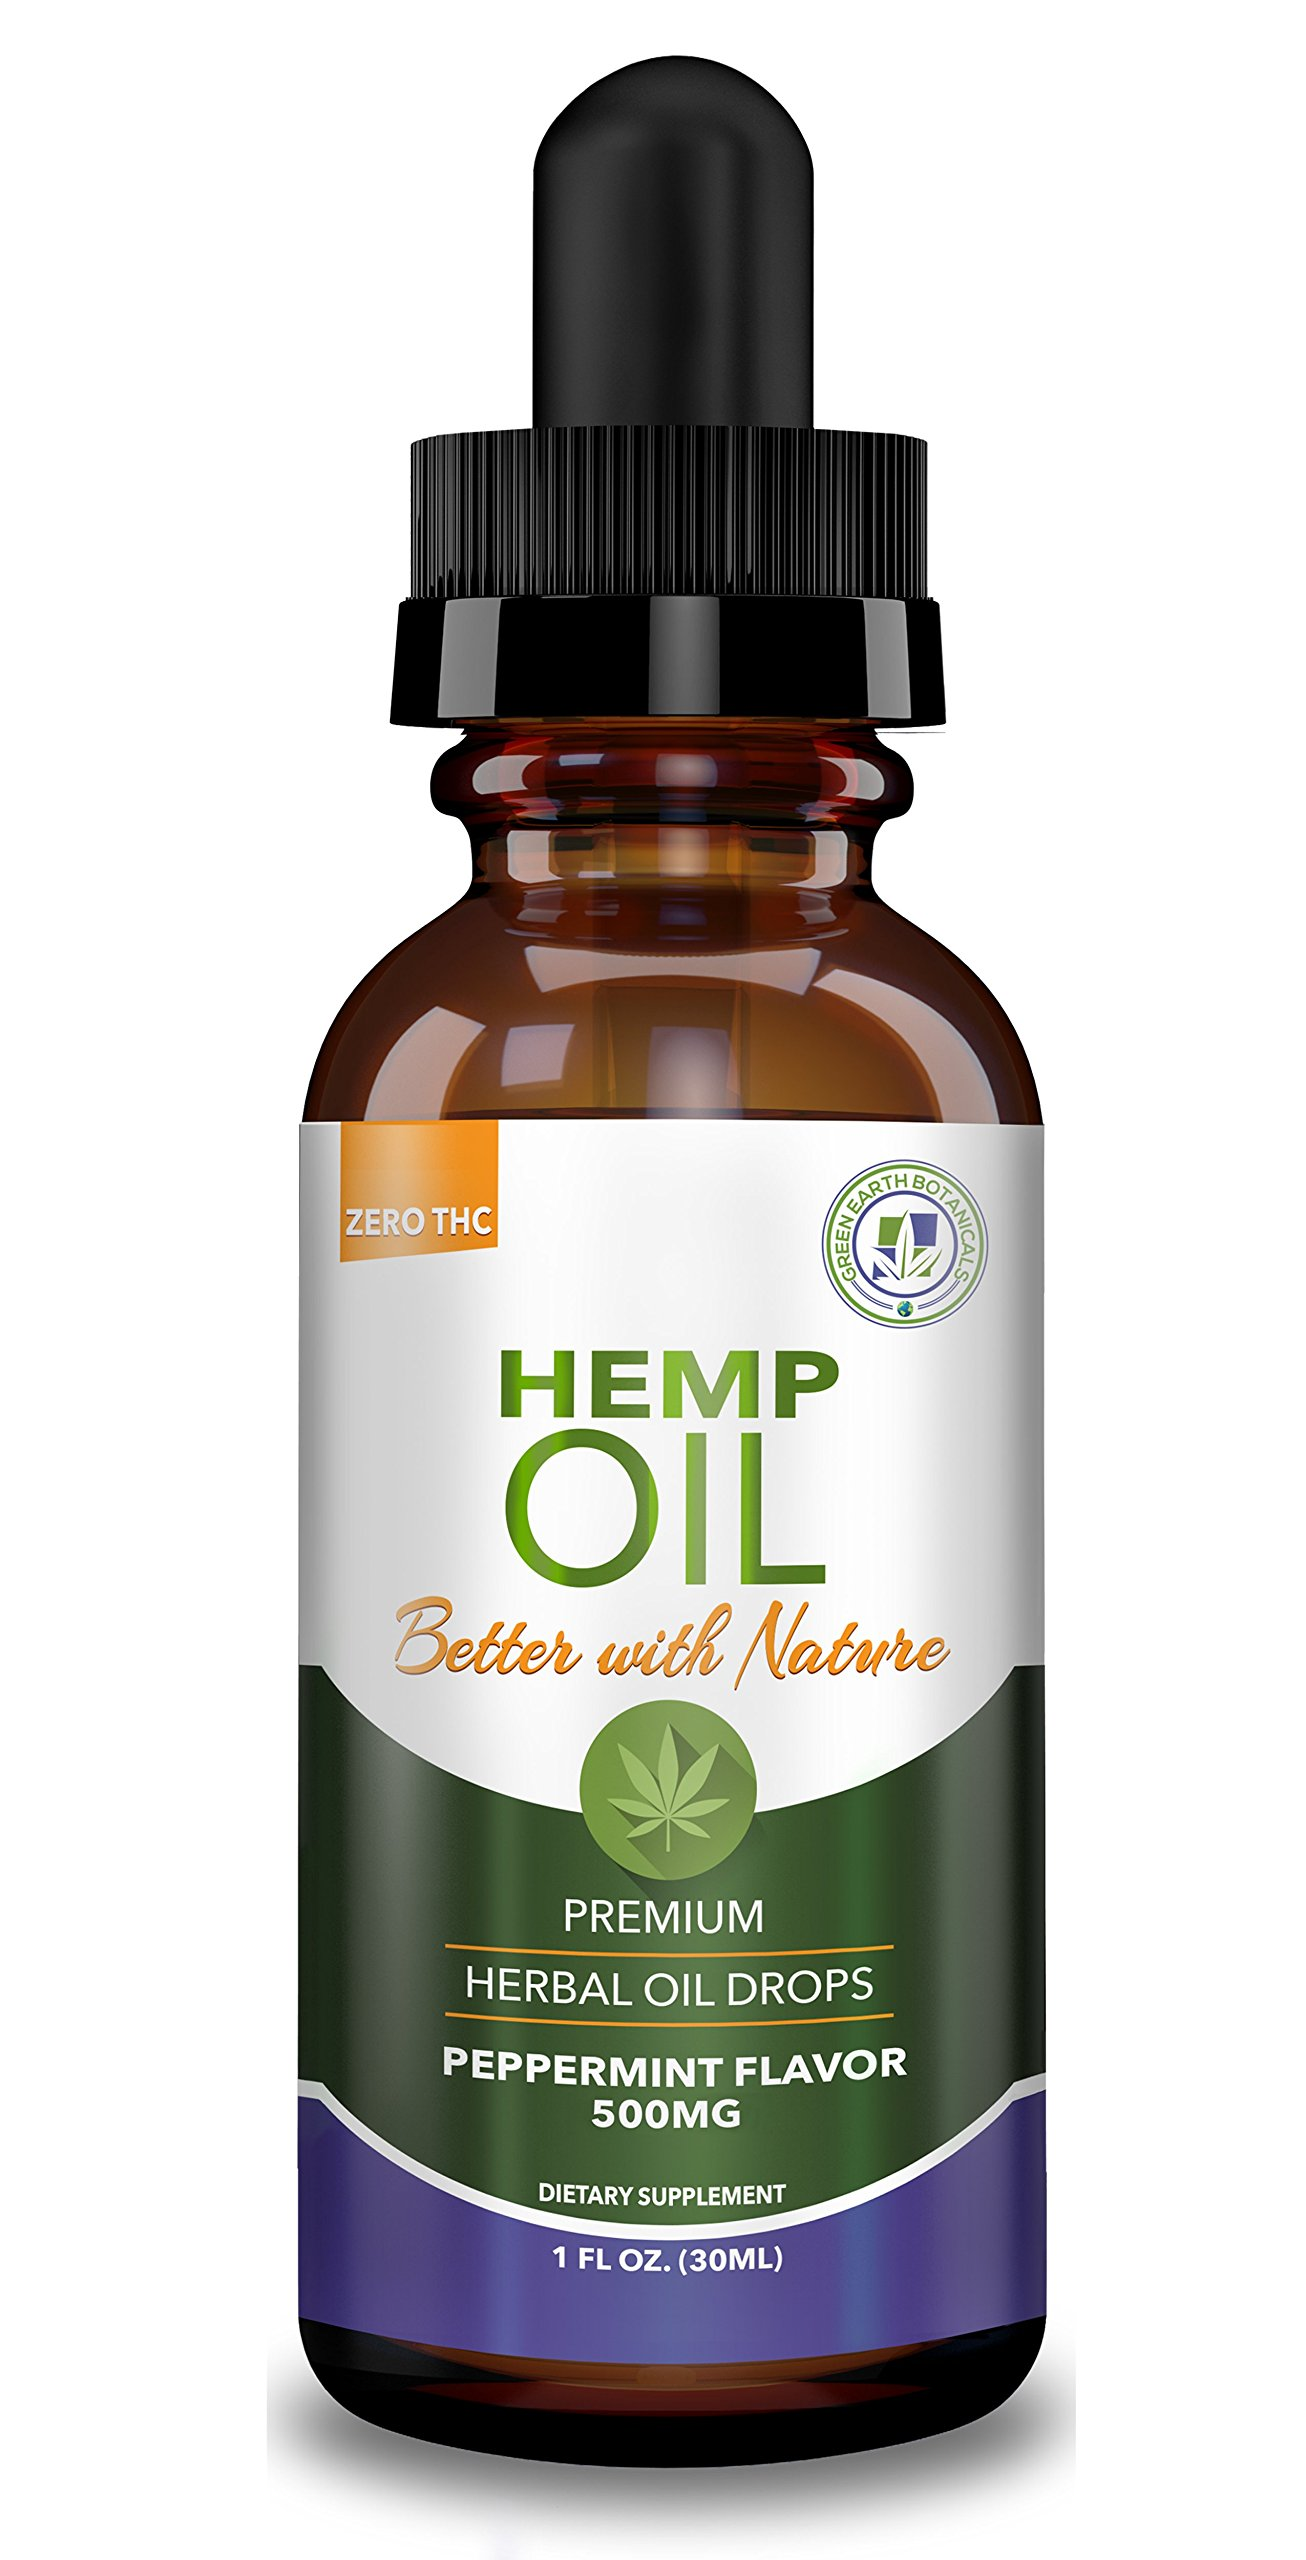 Hemp Oil 500mg for Fast Pain Relief :: Anxiety, Inflammation, Sleep, Nausea, Depression :: Premium Herbal Drops :: MCT Oil Packed with Omega 3,6 Fatty Acids :: Better with Nature 30 Day Supply